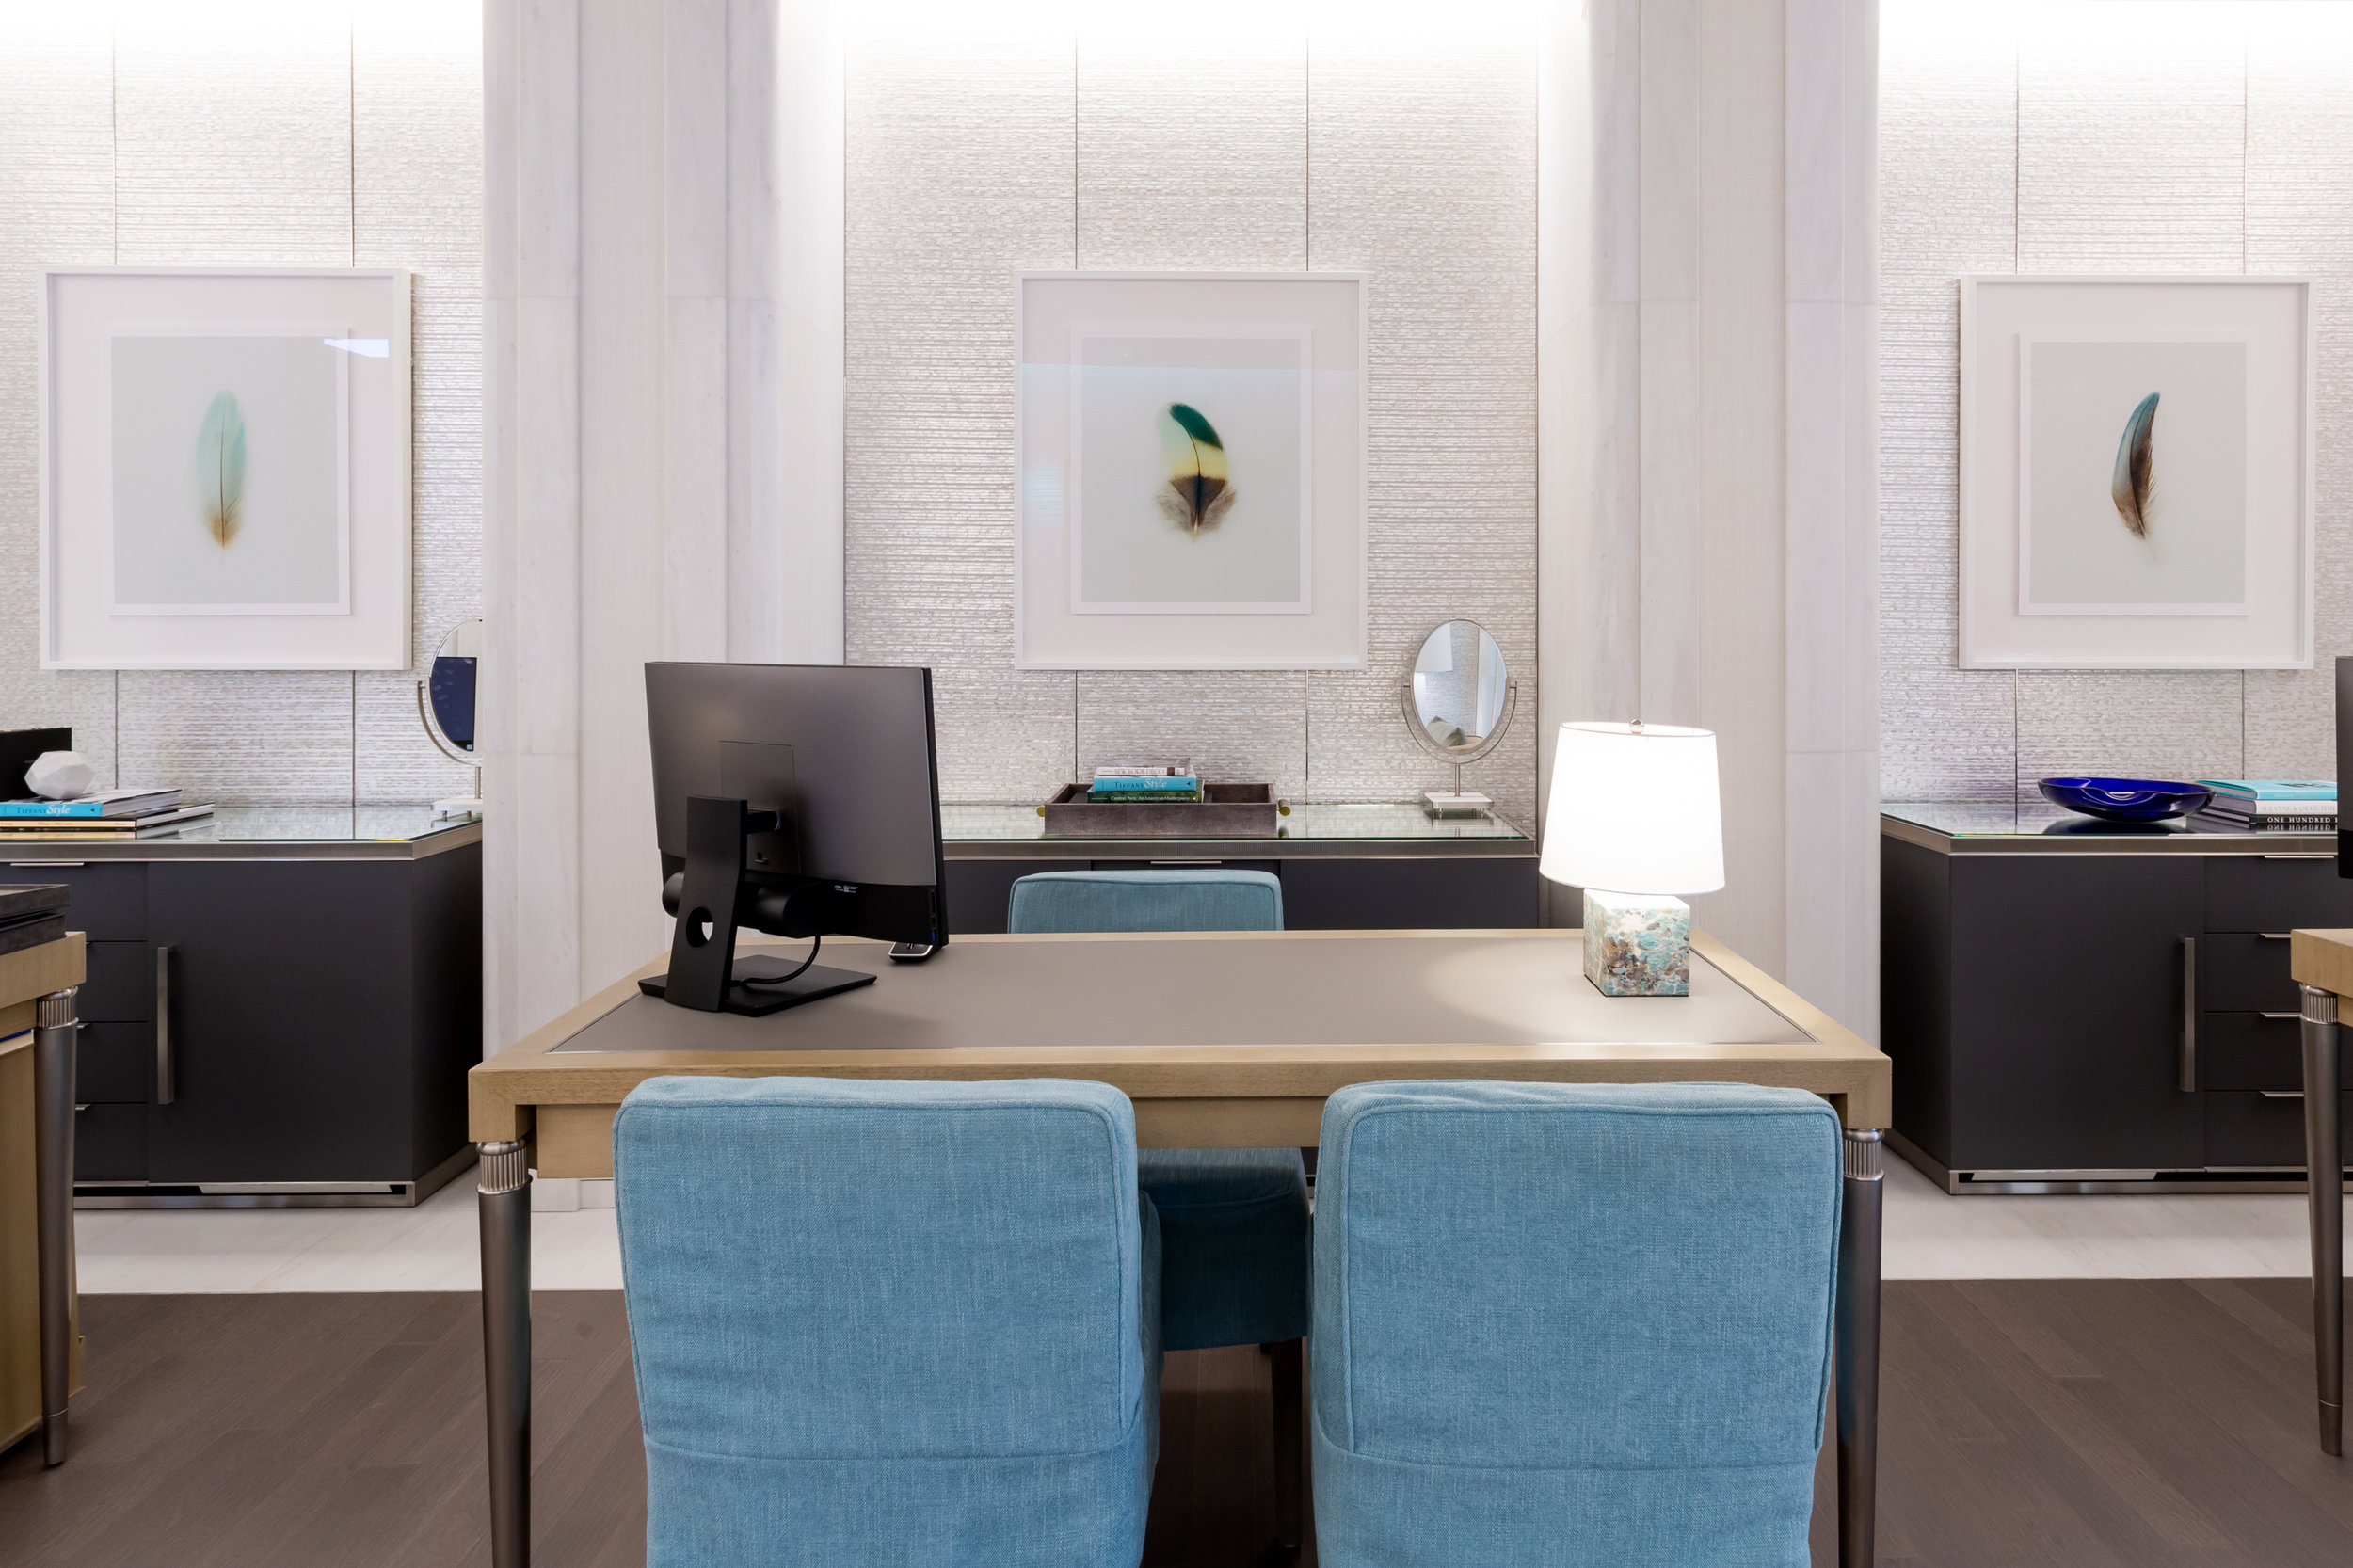 Jared Fowler's 'Feather Image Series' in Tiffany & Co. Sydney.  Image Credit: Jodie Barker.